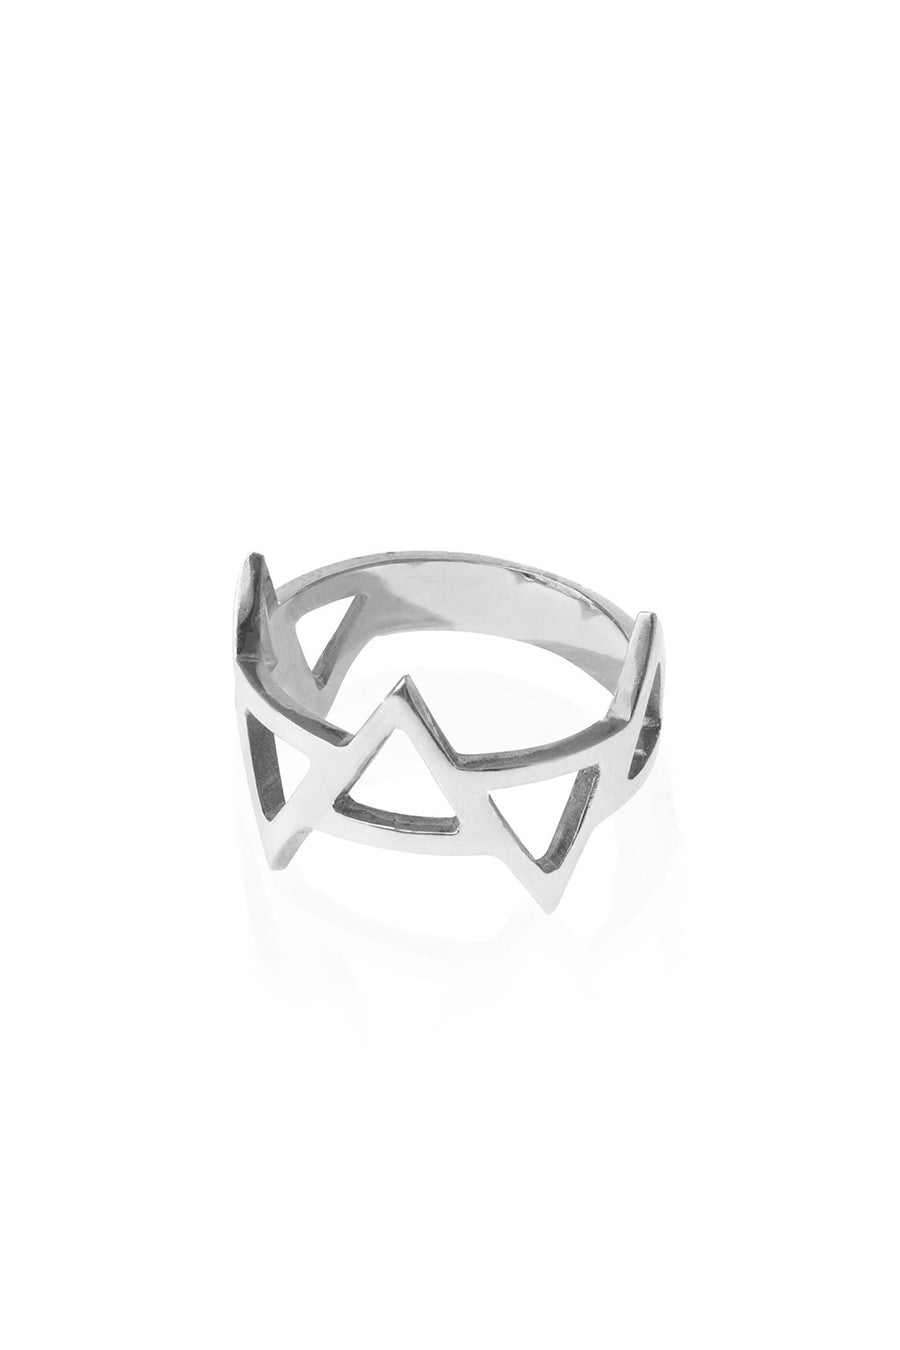 Ladder of Life, Silver Ring